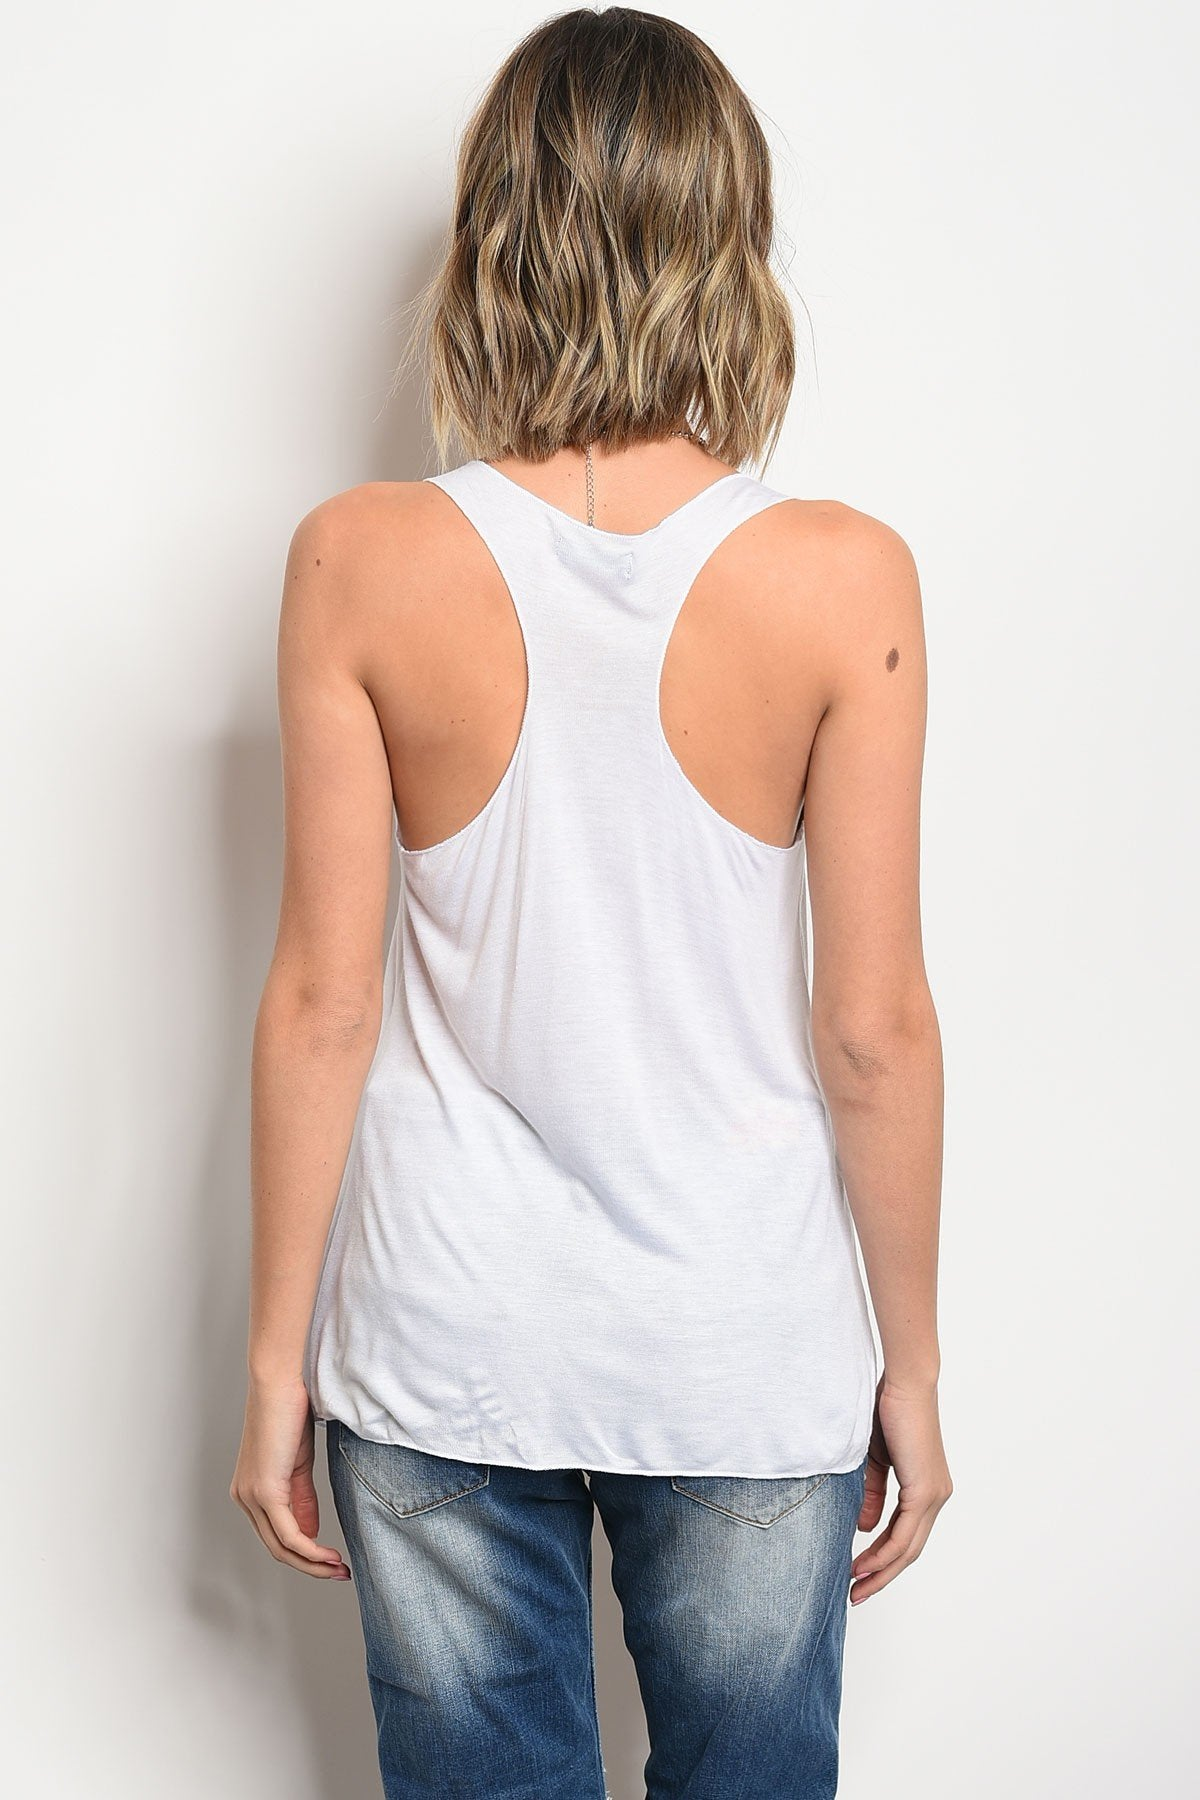 Load image into Gallery viewer, Baddie Graphic Tank - White - Amor Black Boutique